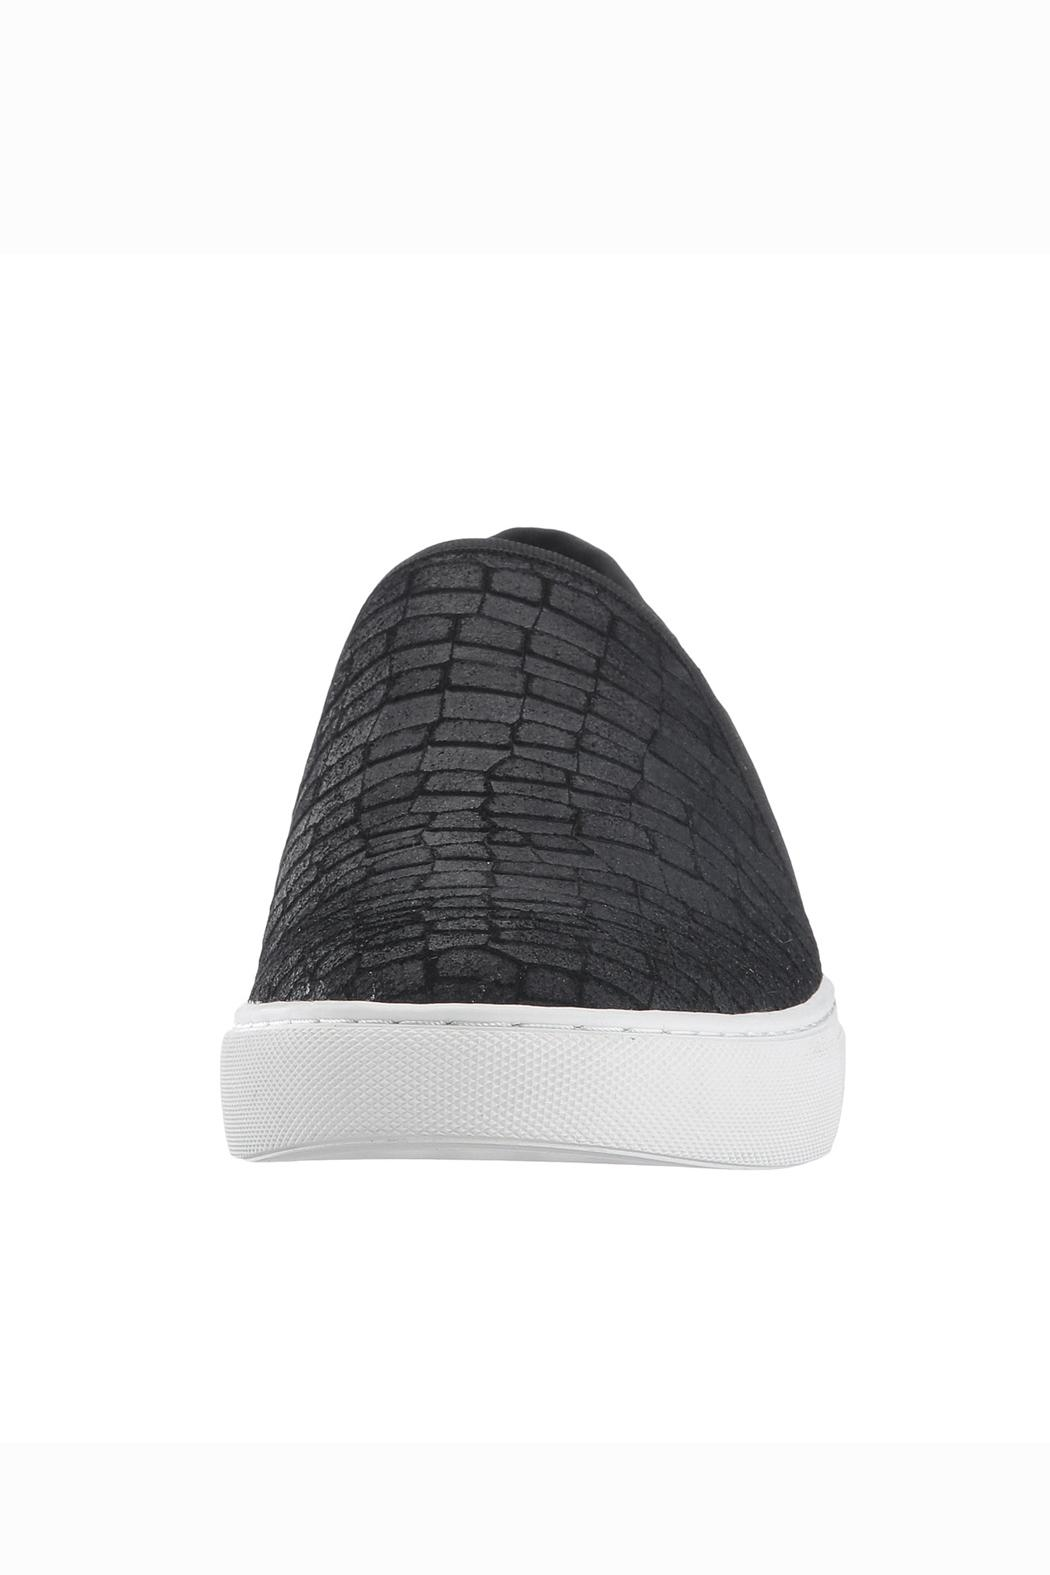 Corso Como Black Textured Slip On - Front Full Image